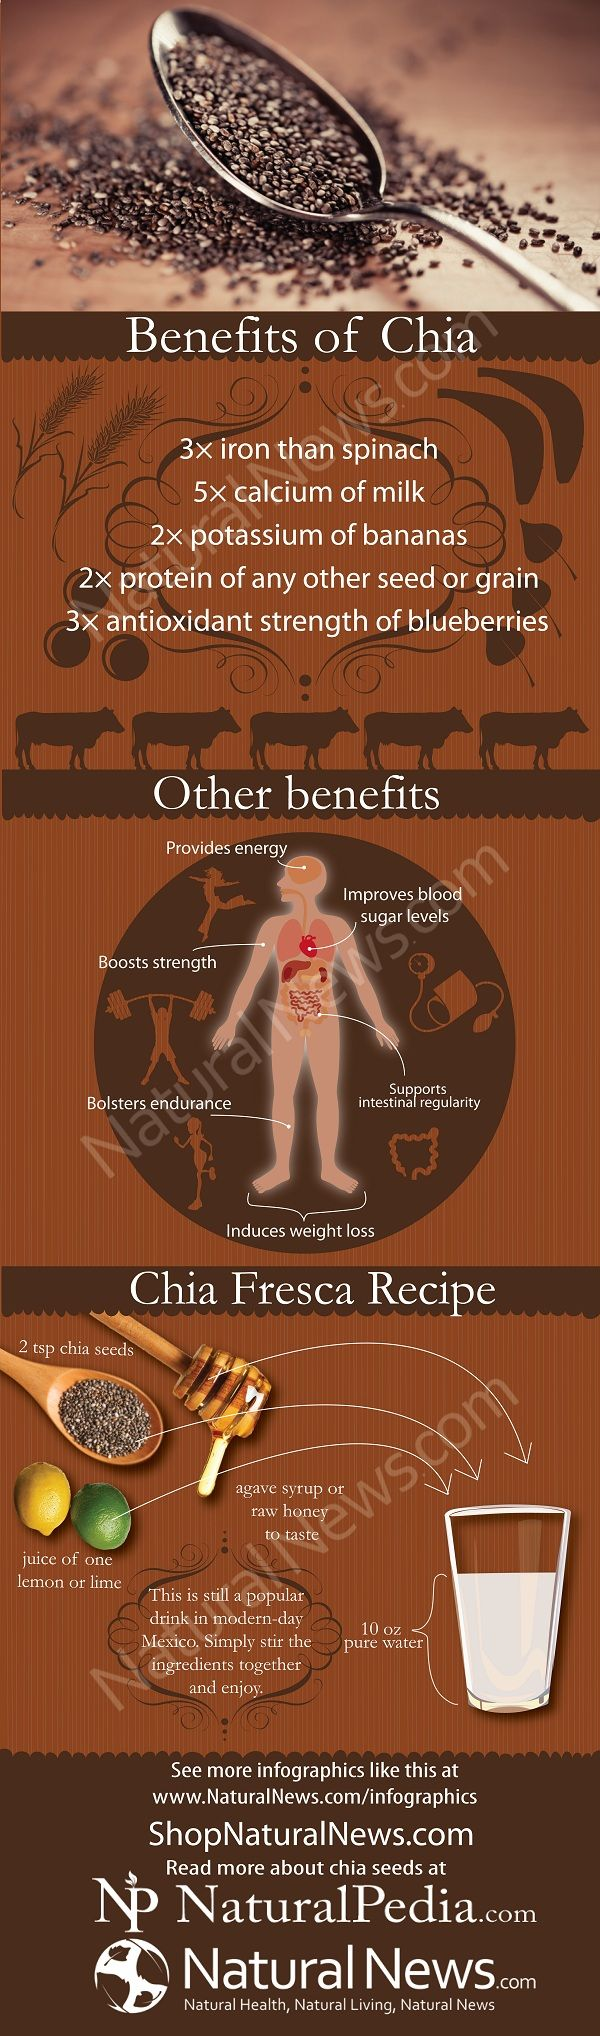 Chia seed benefits. we love them.:)